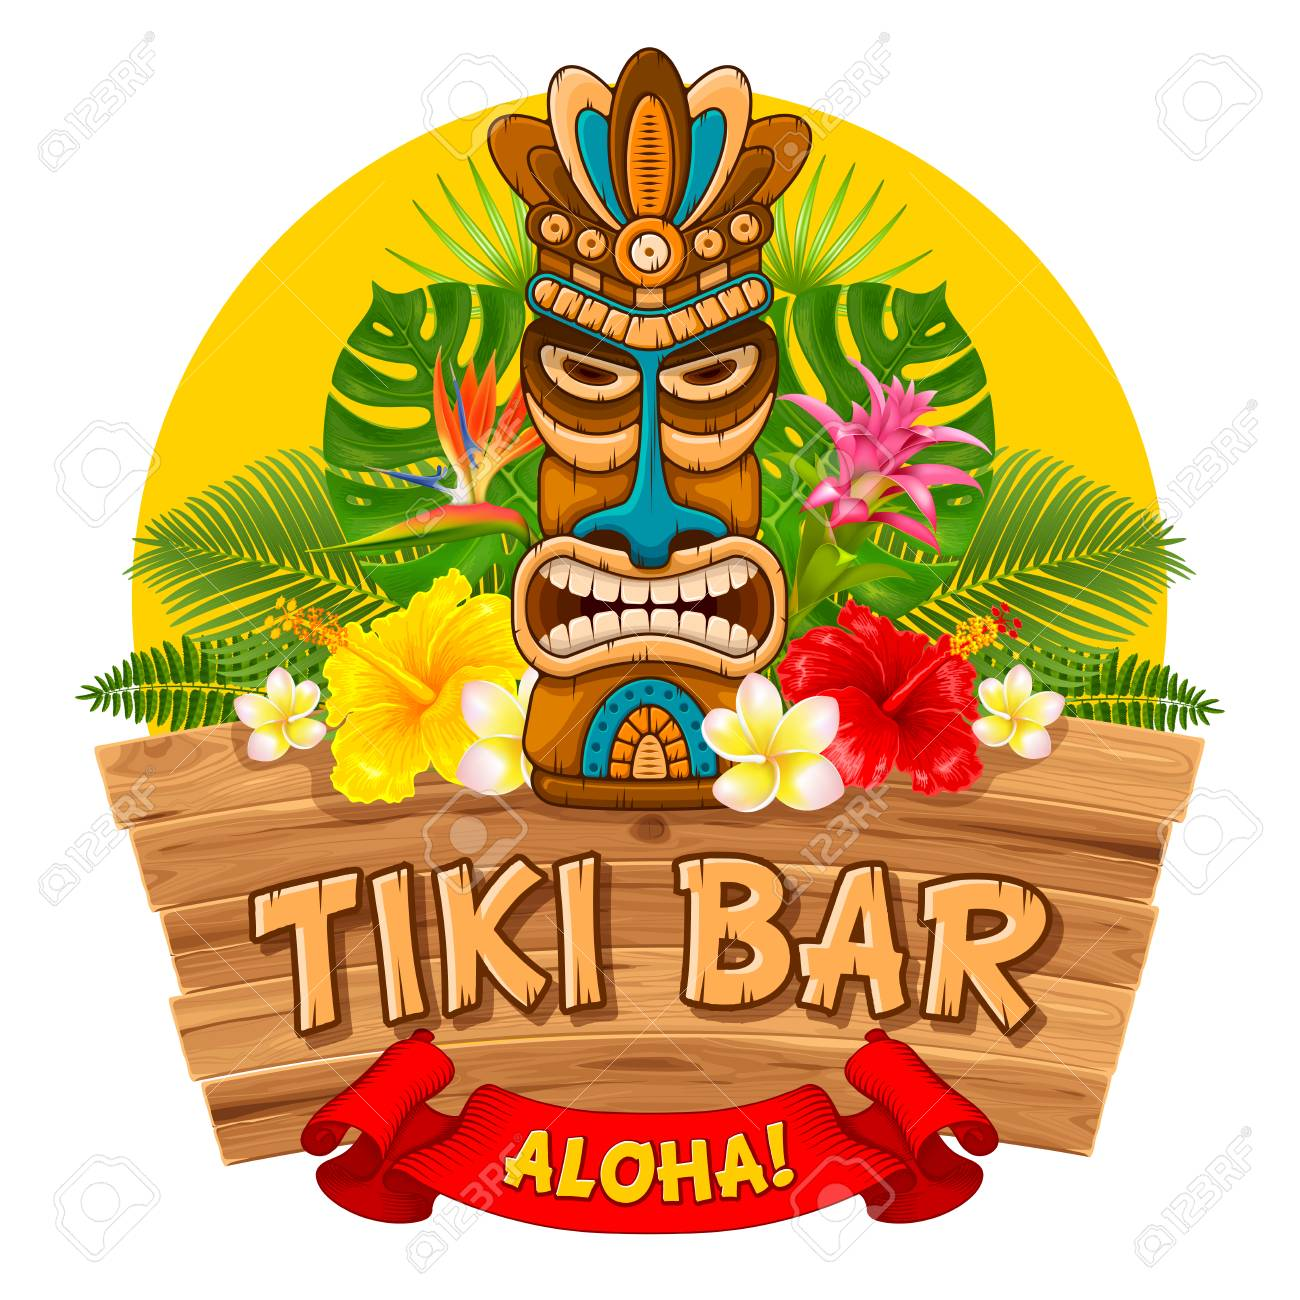 Tiki tribal wooden mask, tropical exotic plants and signboard of bar. Hawaiian traditional elements. Isolated on white background. Vector illustration. - 98758115